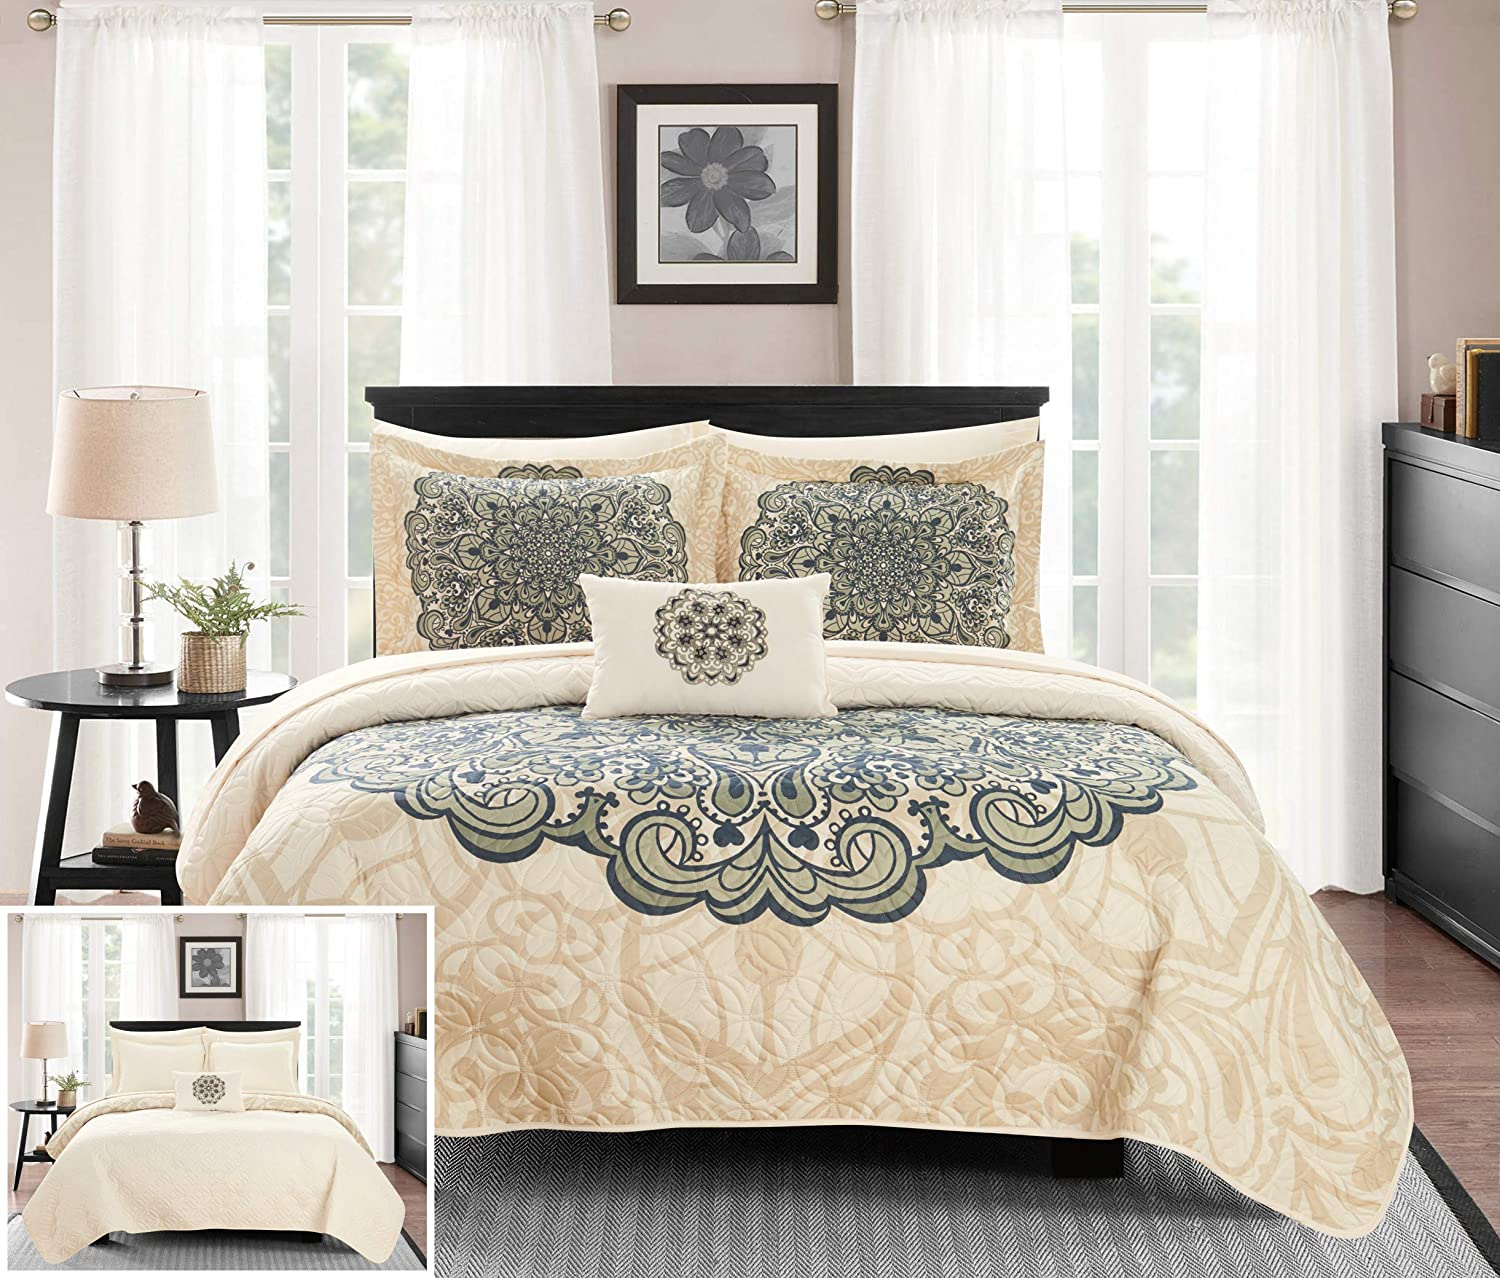 Chic Home Raina 4 Piece Reversible Quilt Coverlet Set Large Scale Boho Inspired Medallion Paisley Print Design Bedding - Decorative Pillow Shams Included, Queen, Beige